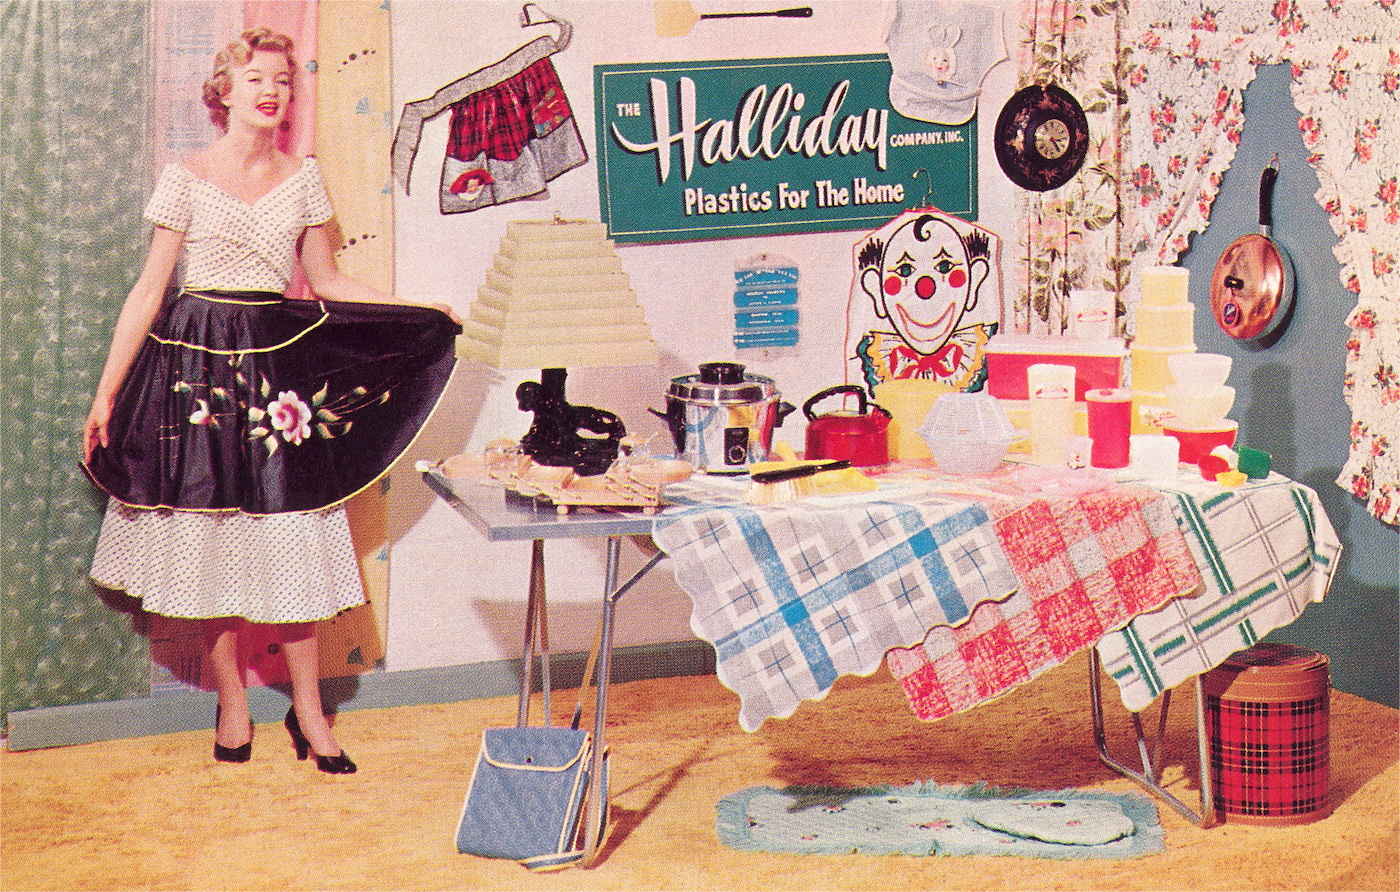 An old-fashioned display of household items like containers, tablecloths, and signs made from plastic.